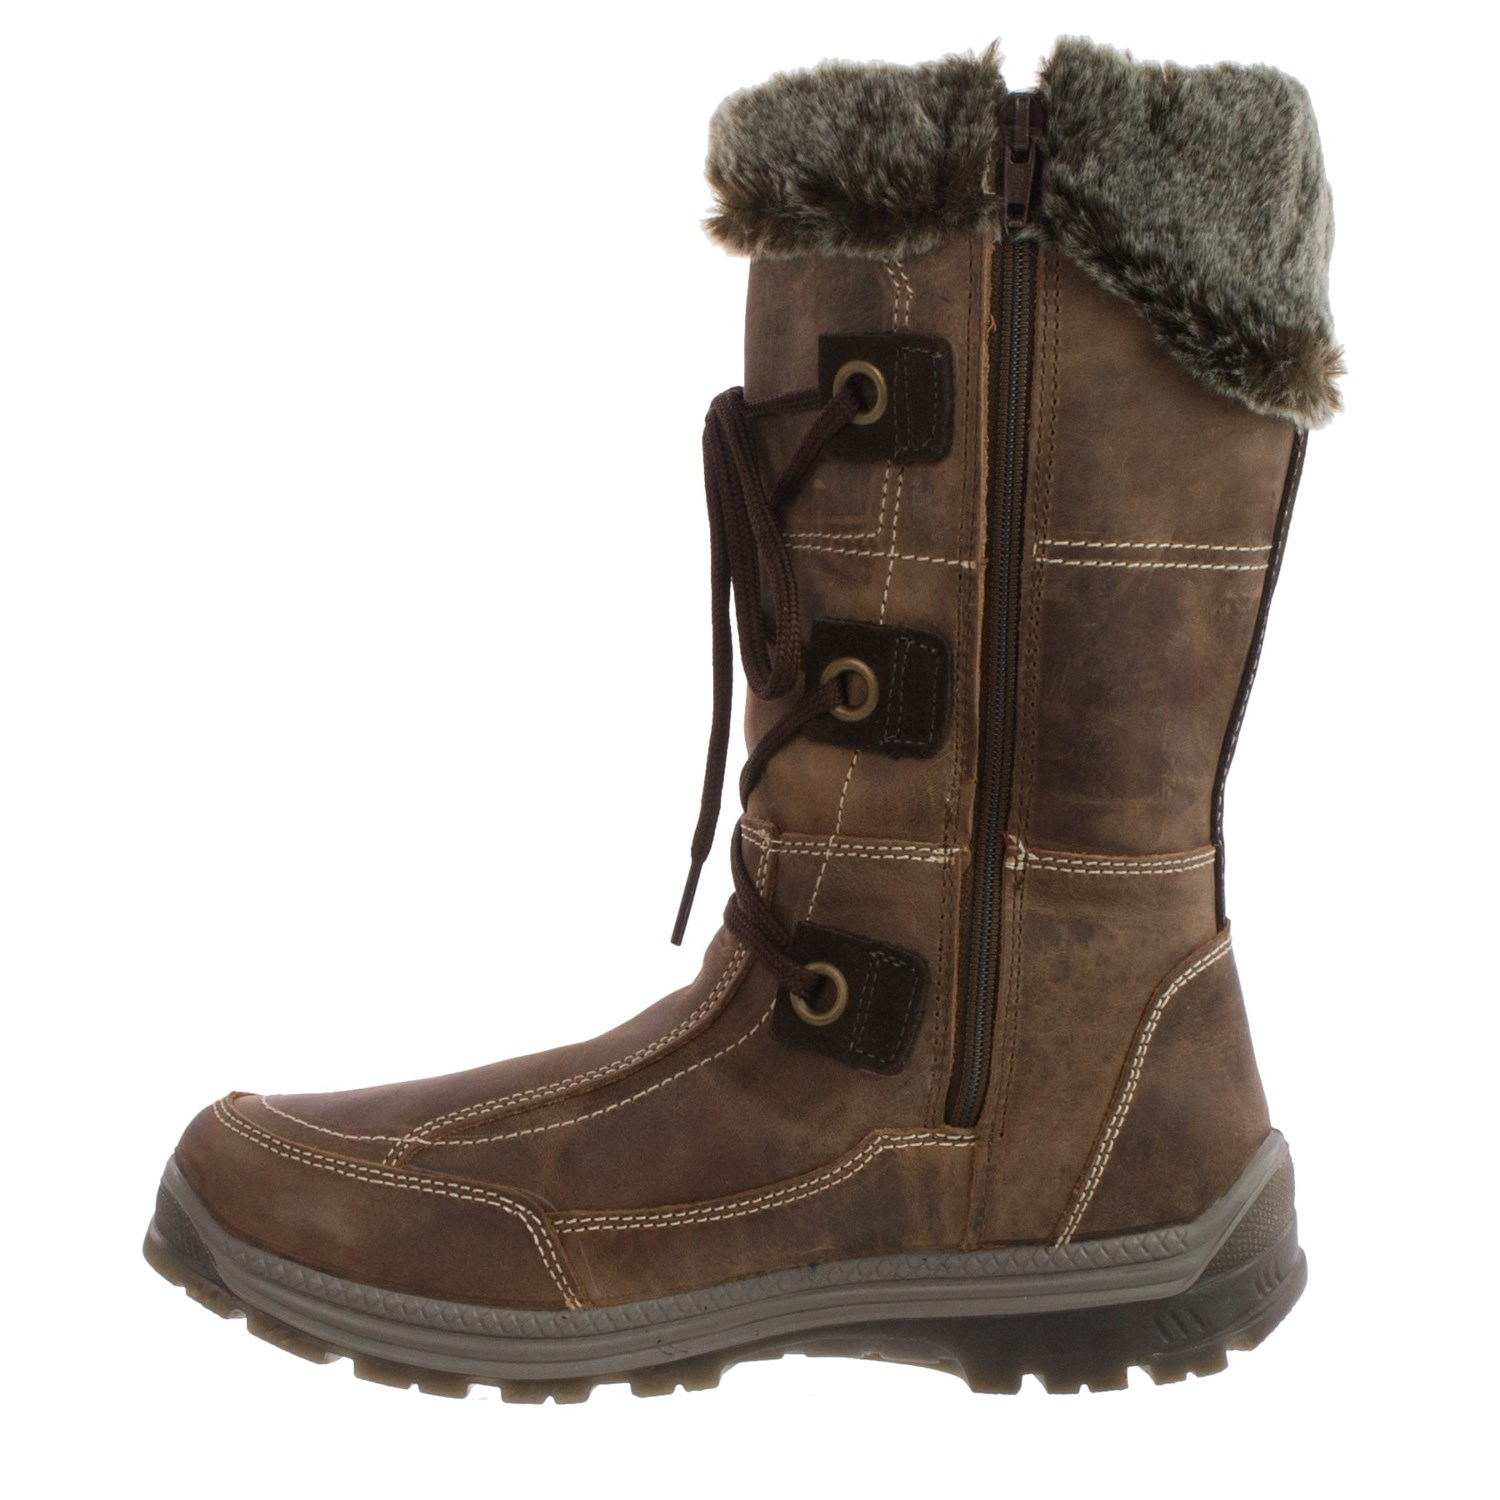 Santana Canada Mendoza Leather Snow Boots (For Women) - Save 89%